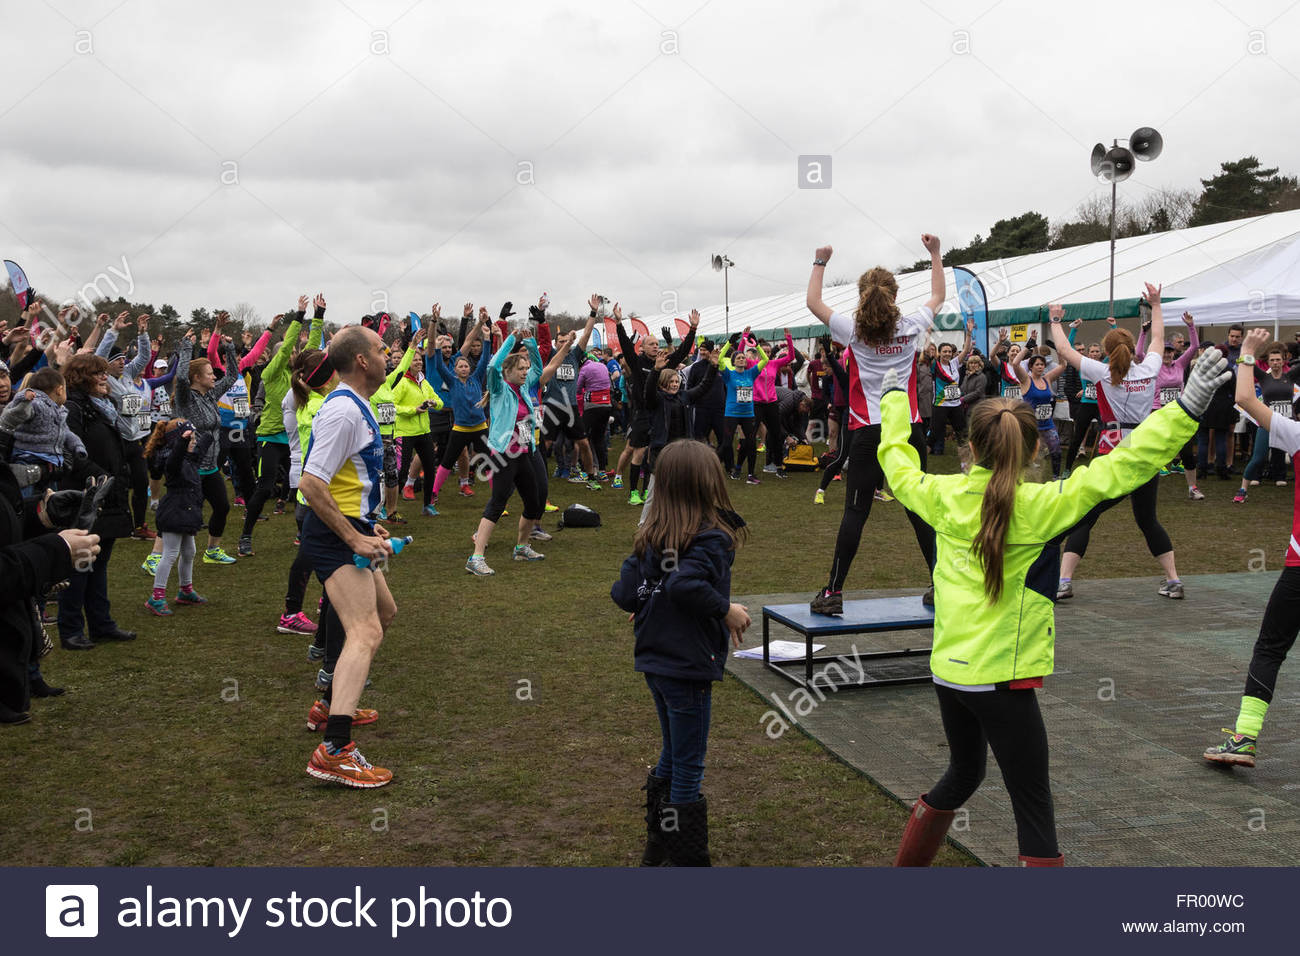 Fleet, Hampshire UK. 20th March 2016. 3,500 runners take part in the annual Fleet Half-Marathon. A team from the - Stock Image